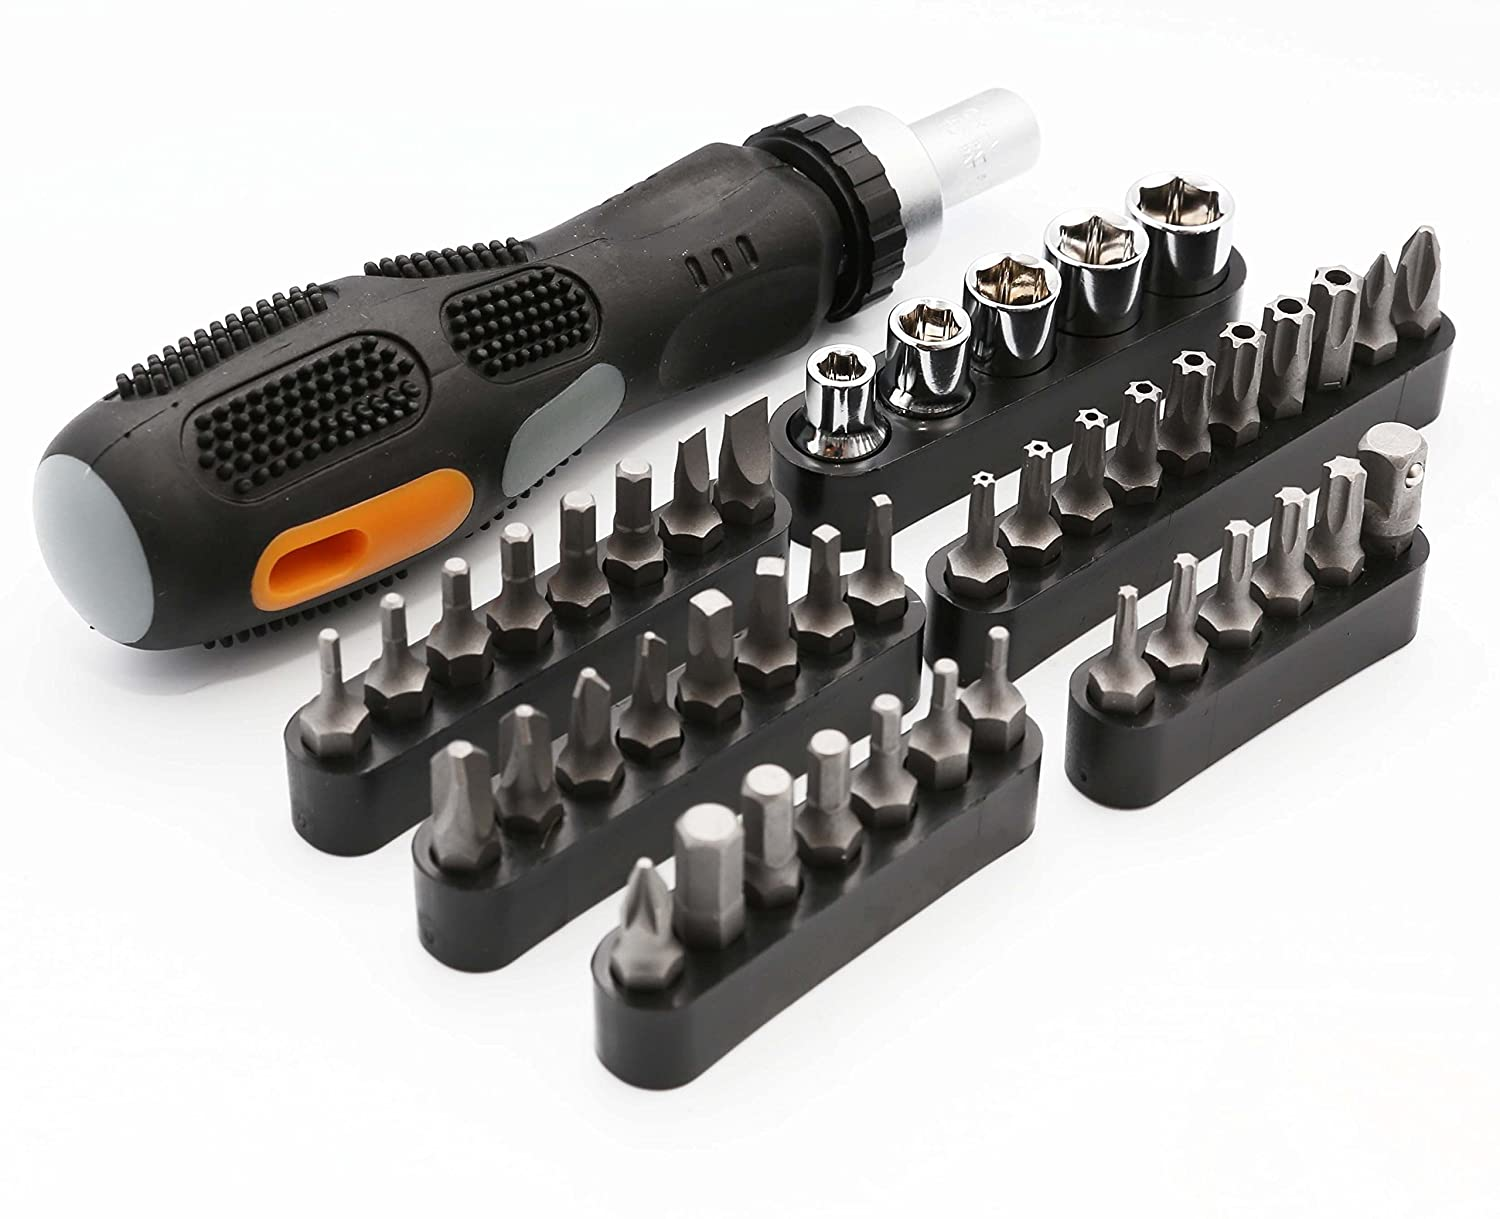 Amazon.com: 100 Piece Computer Technician Tool Kit for Repairing ...